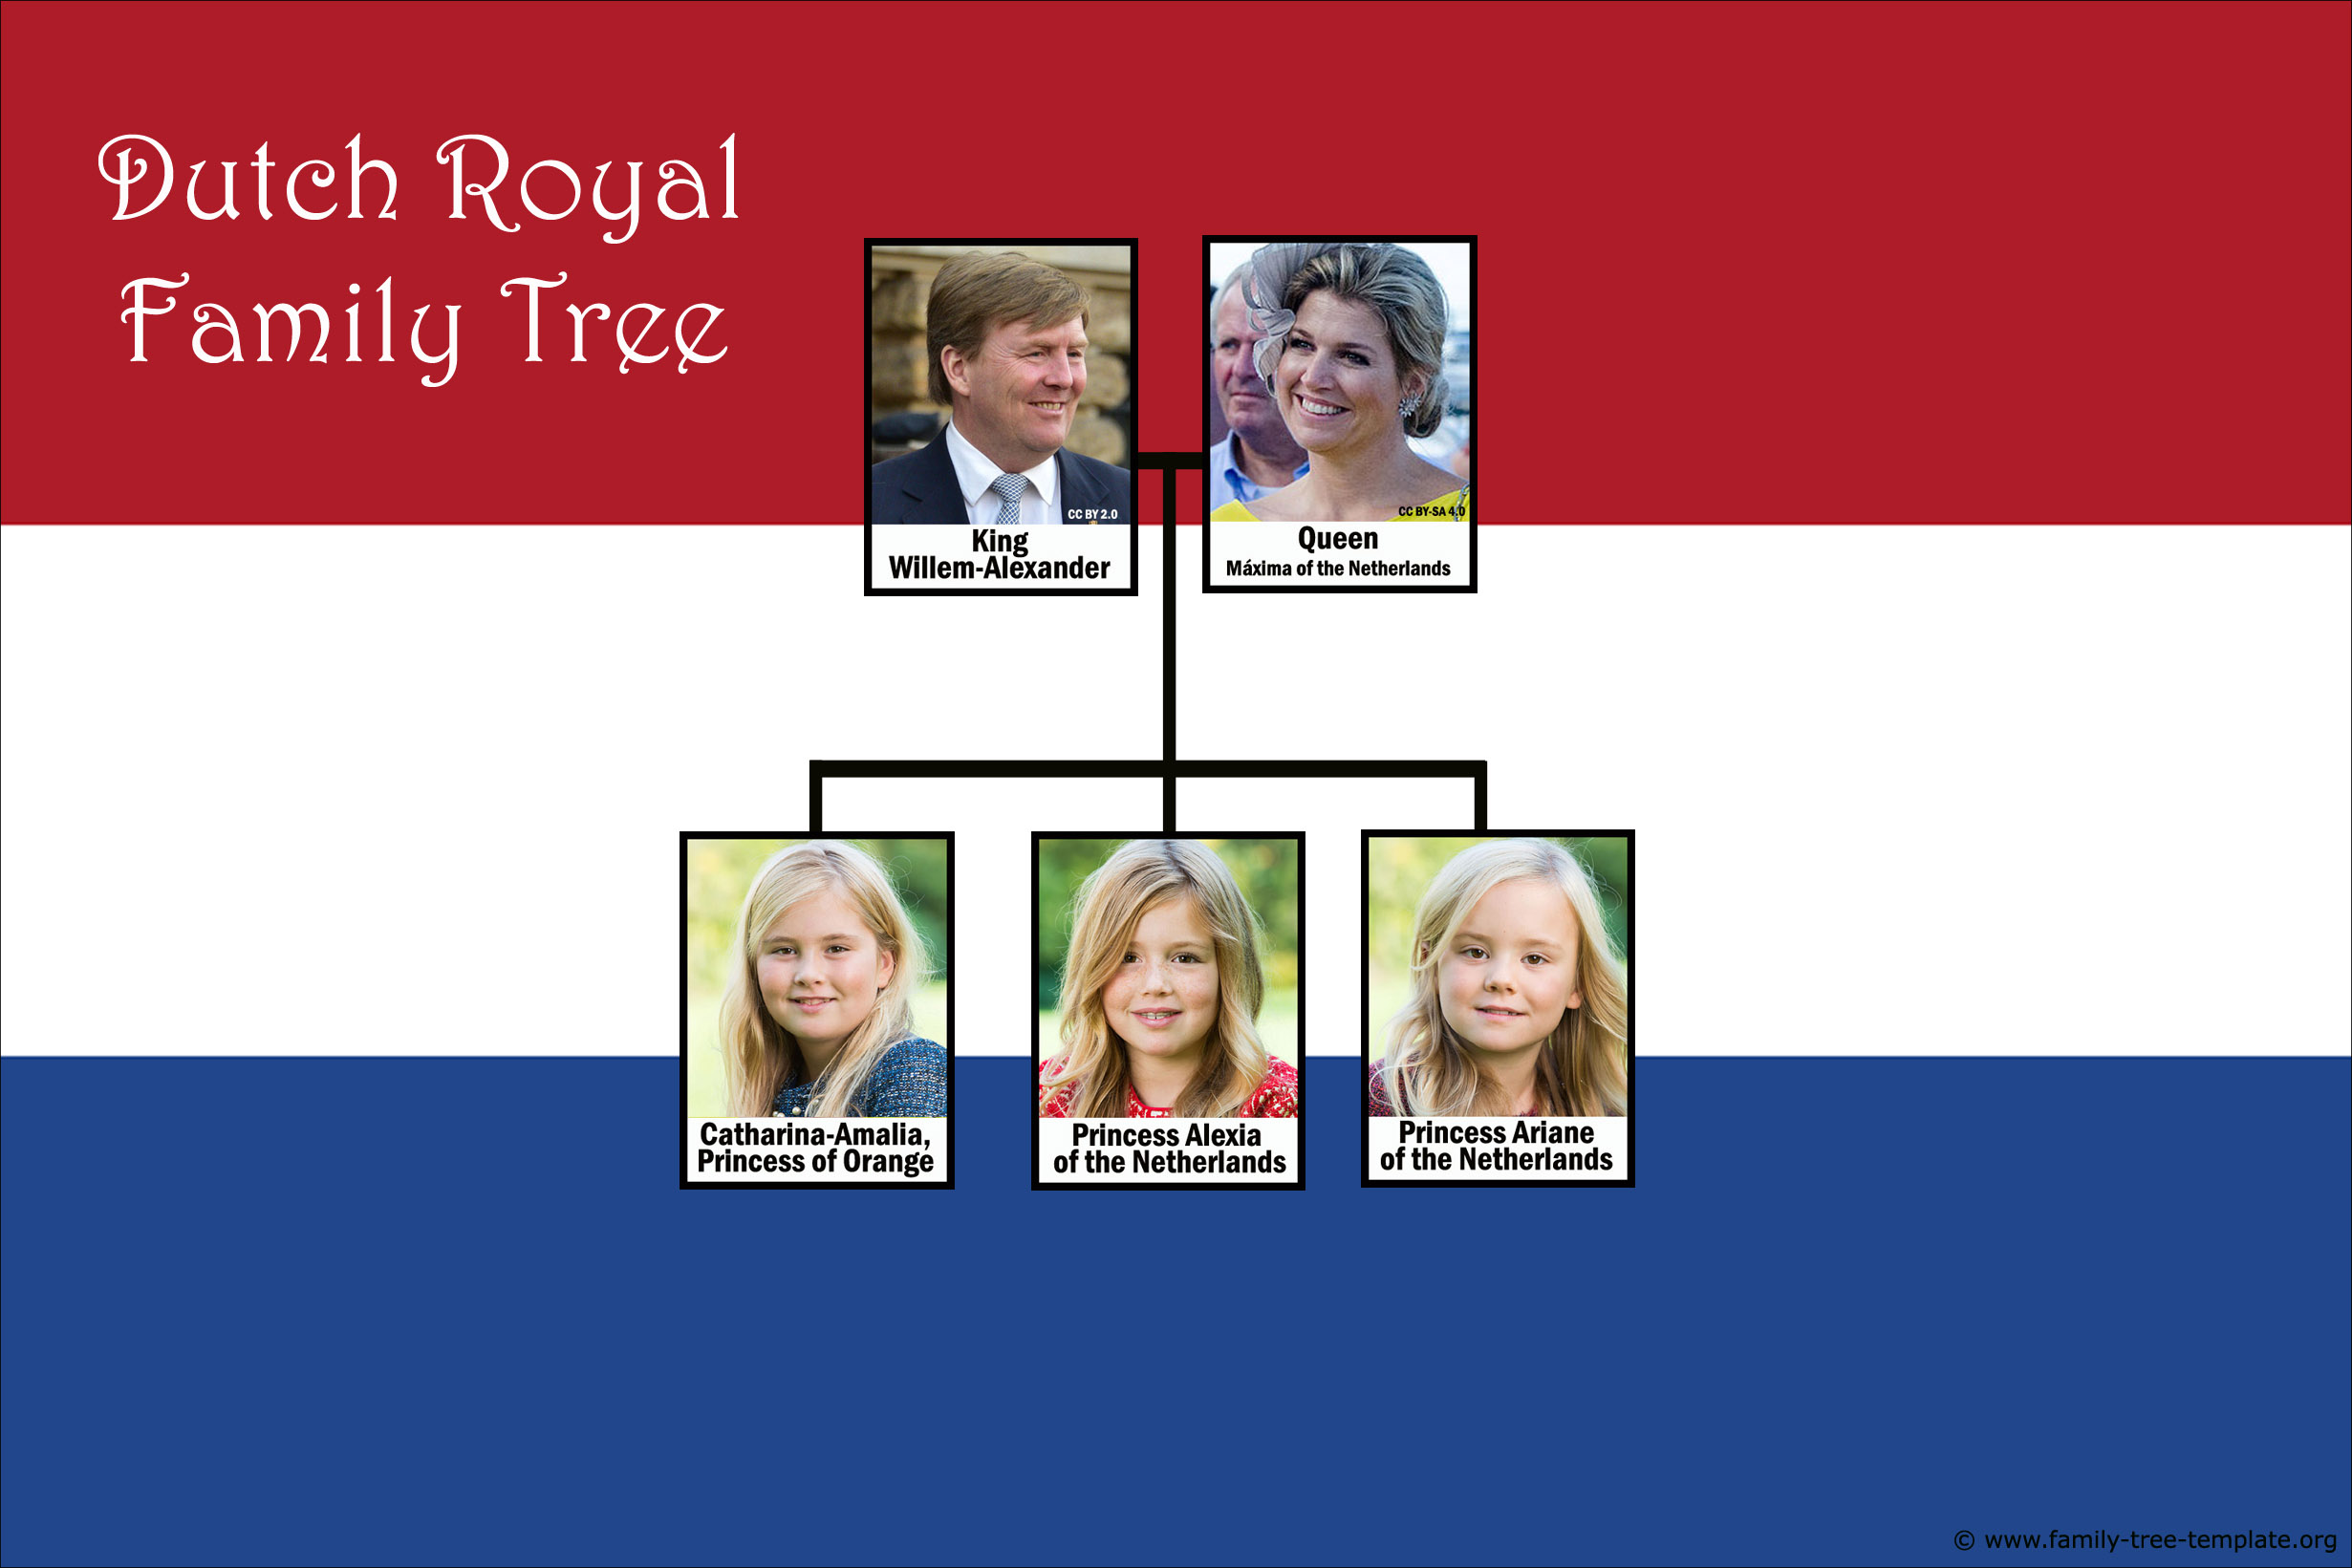 Royal Dutch family tree with King Willem-Alexander